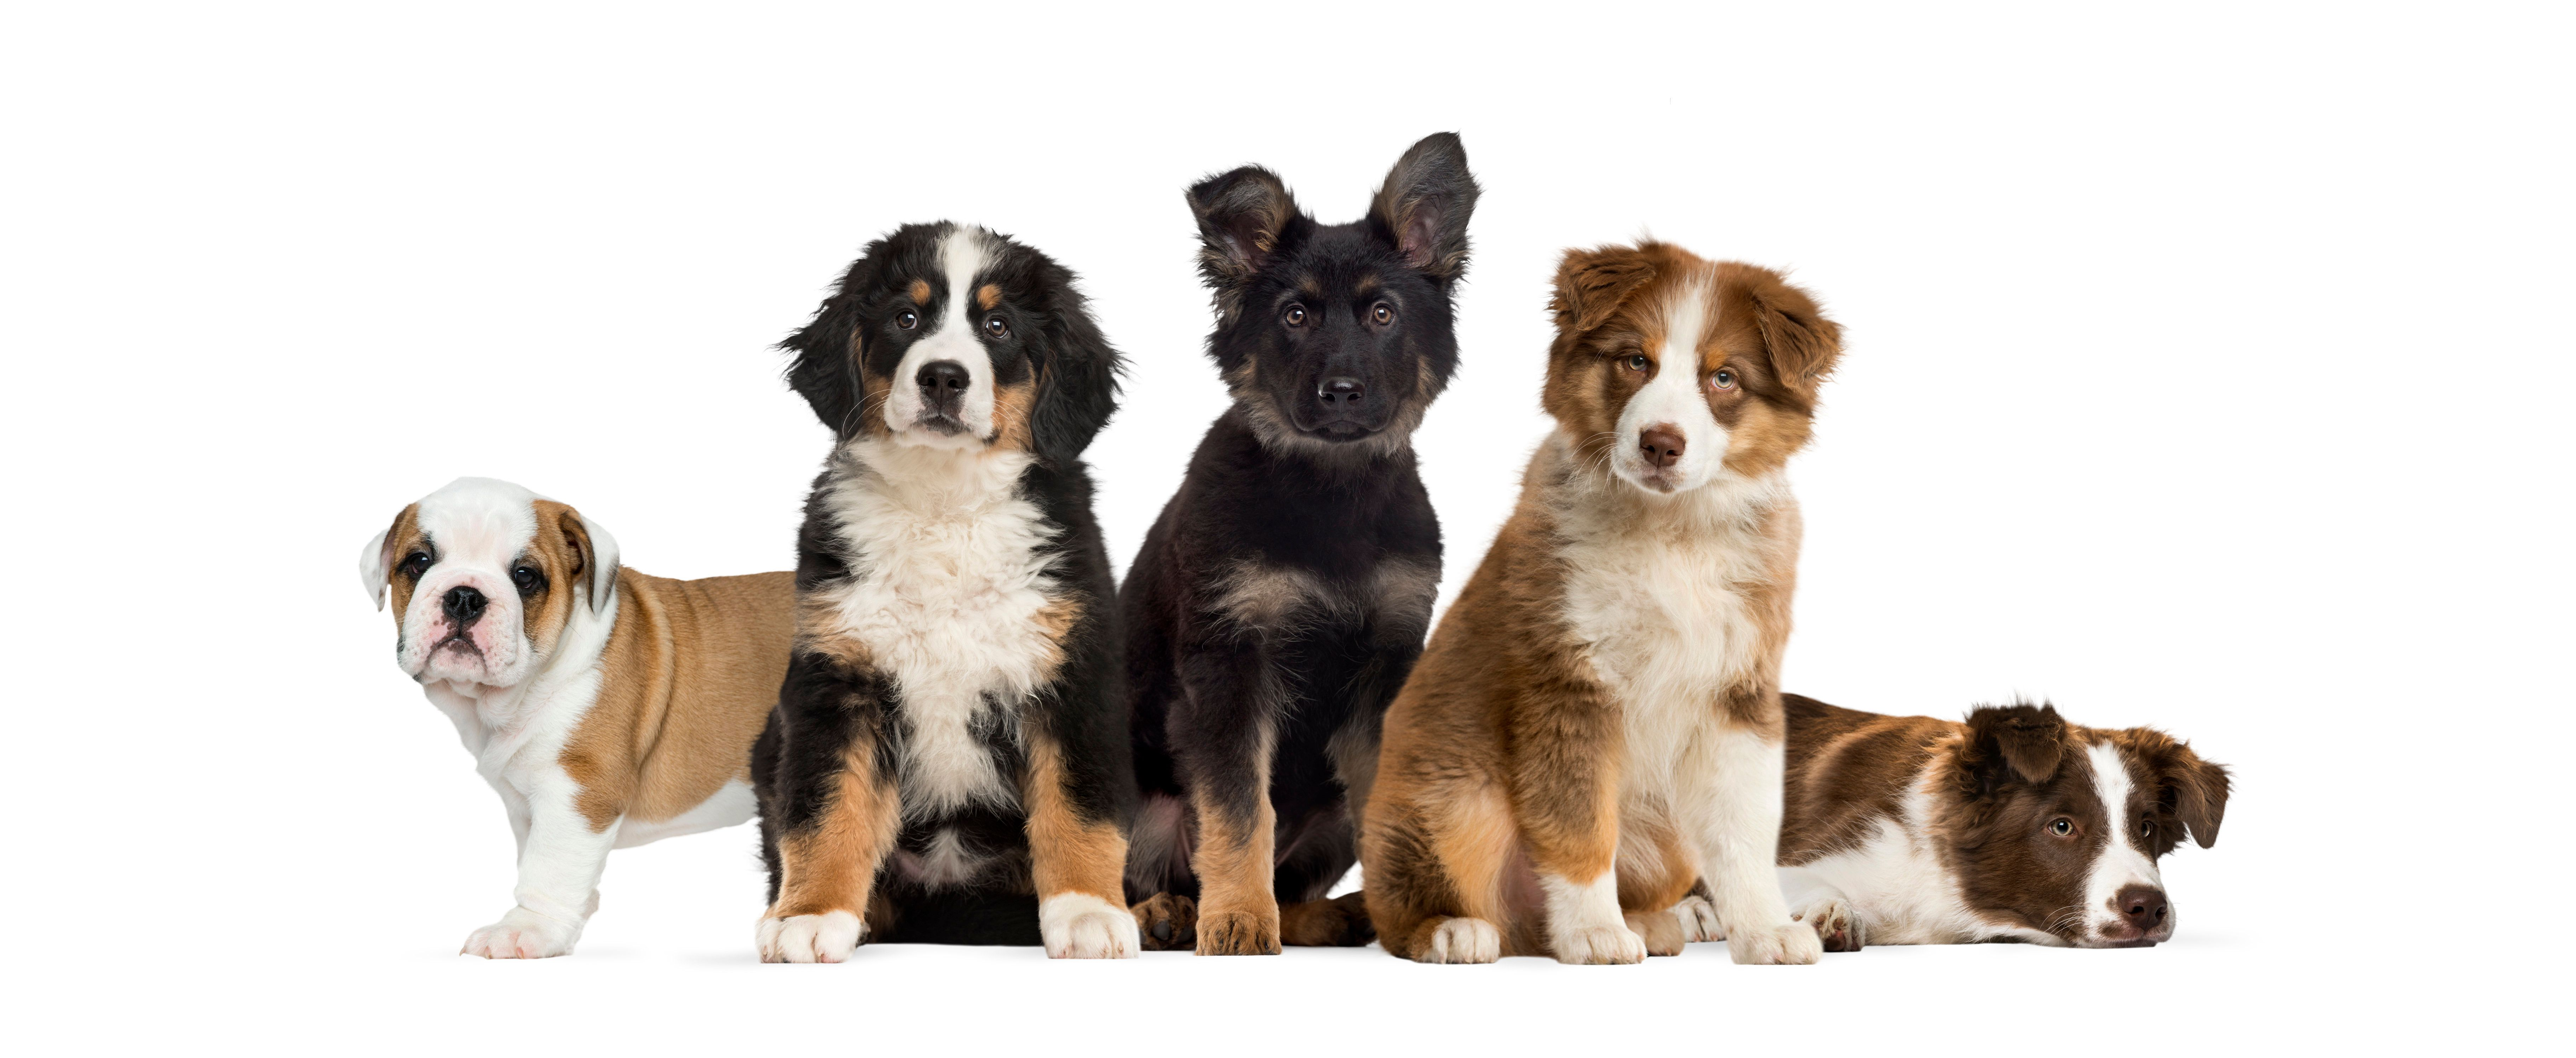 It's National Puppy Day! Here's What You Need To Know About Those Oh-So-Cute